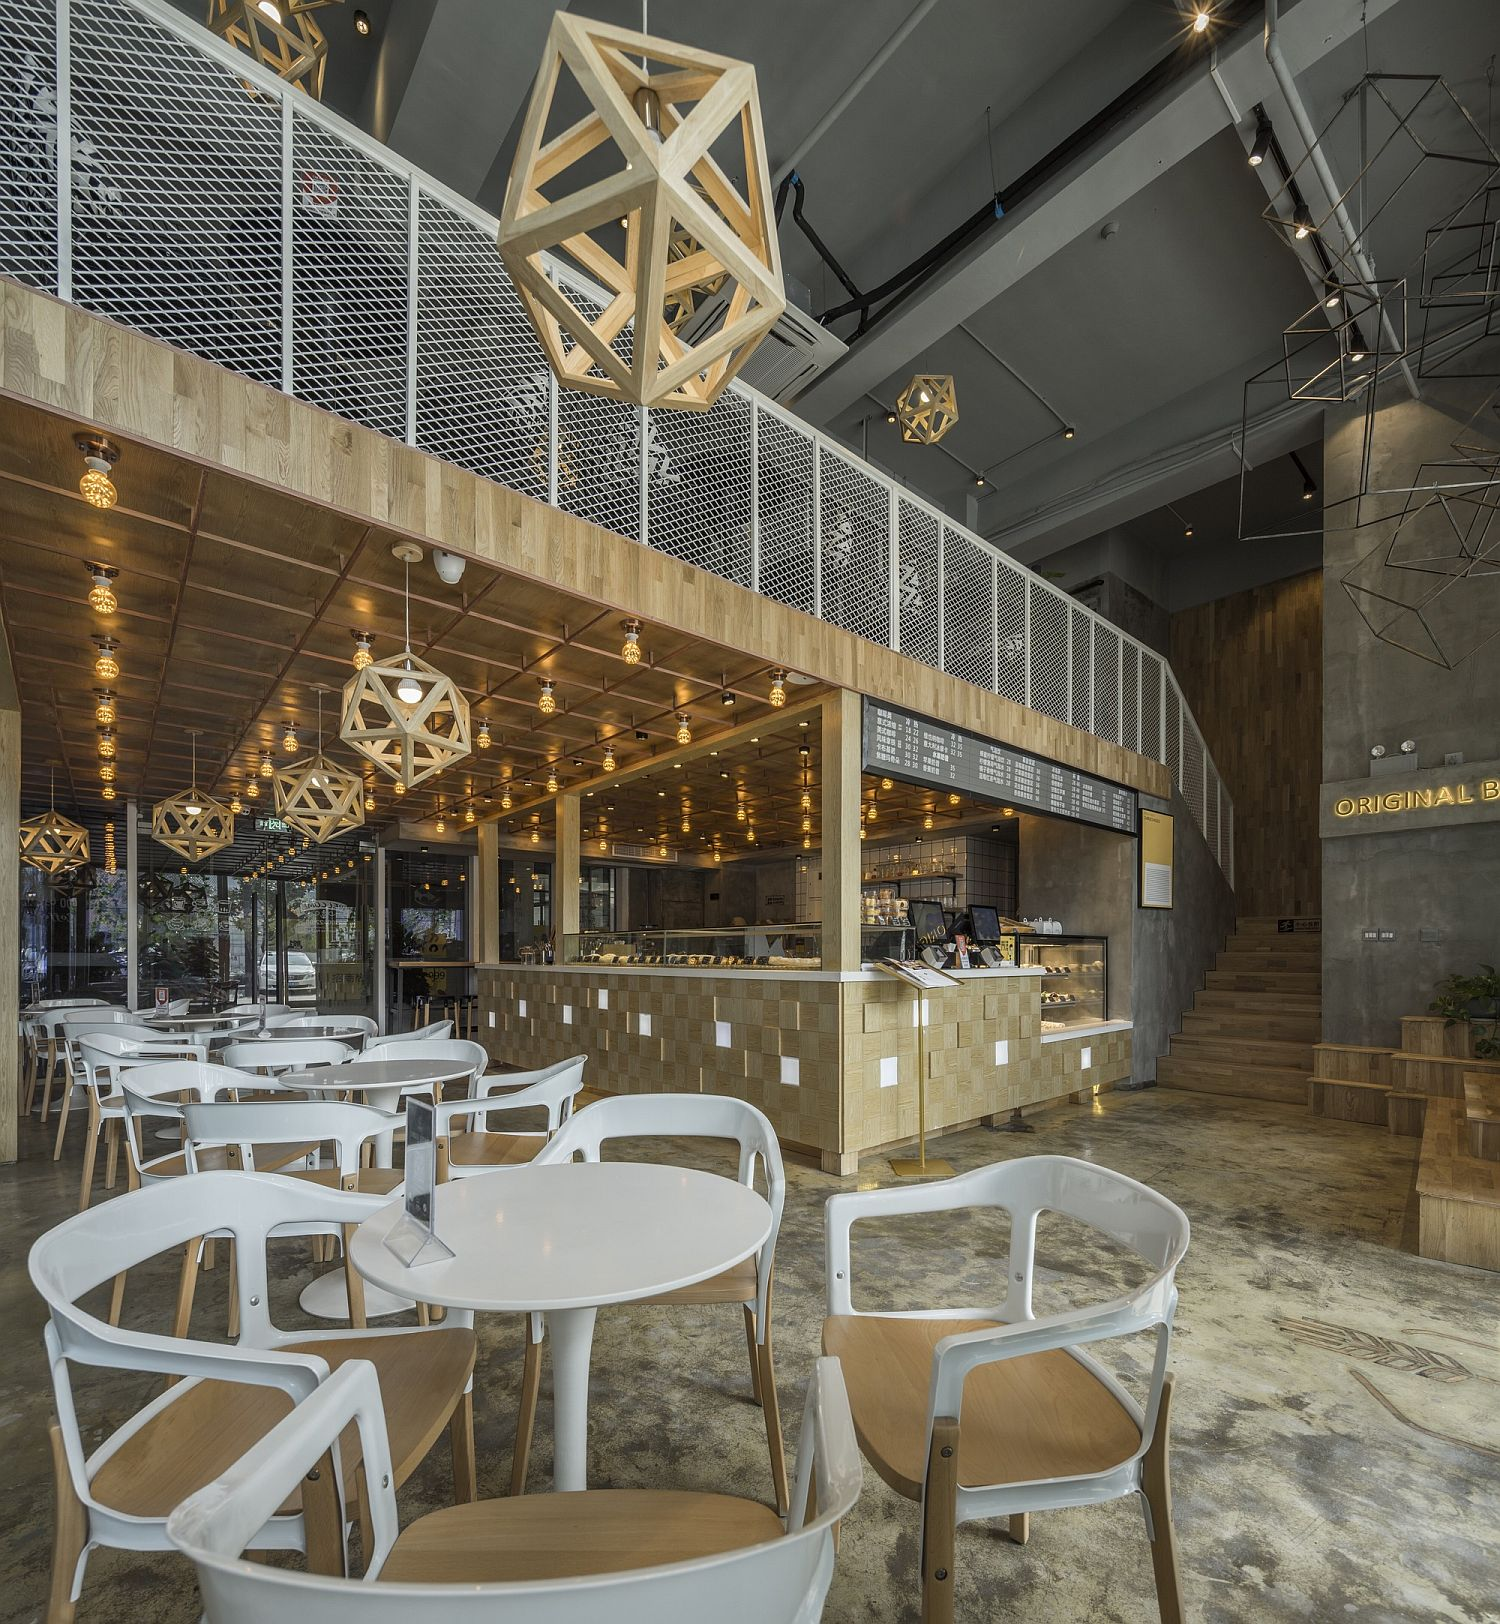 Metal-and-wood-shape-a-unique-interior-inside-the-restaurant